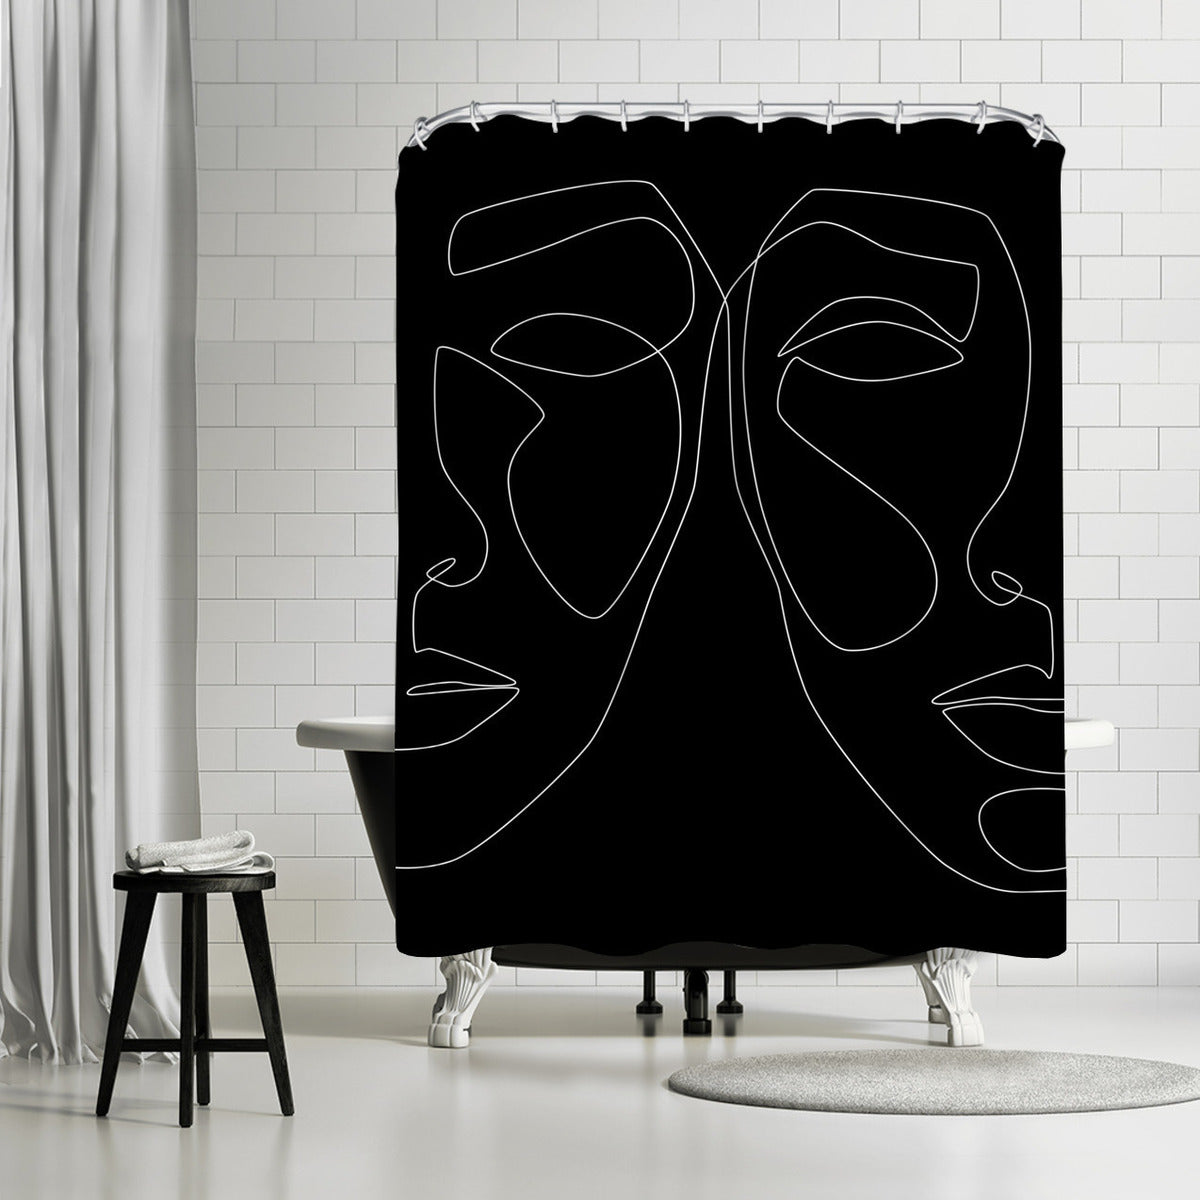 White Line Couple by Explicit Design Shower Curtain - Shower Curtain - Americanflat